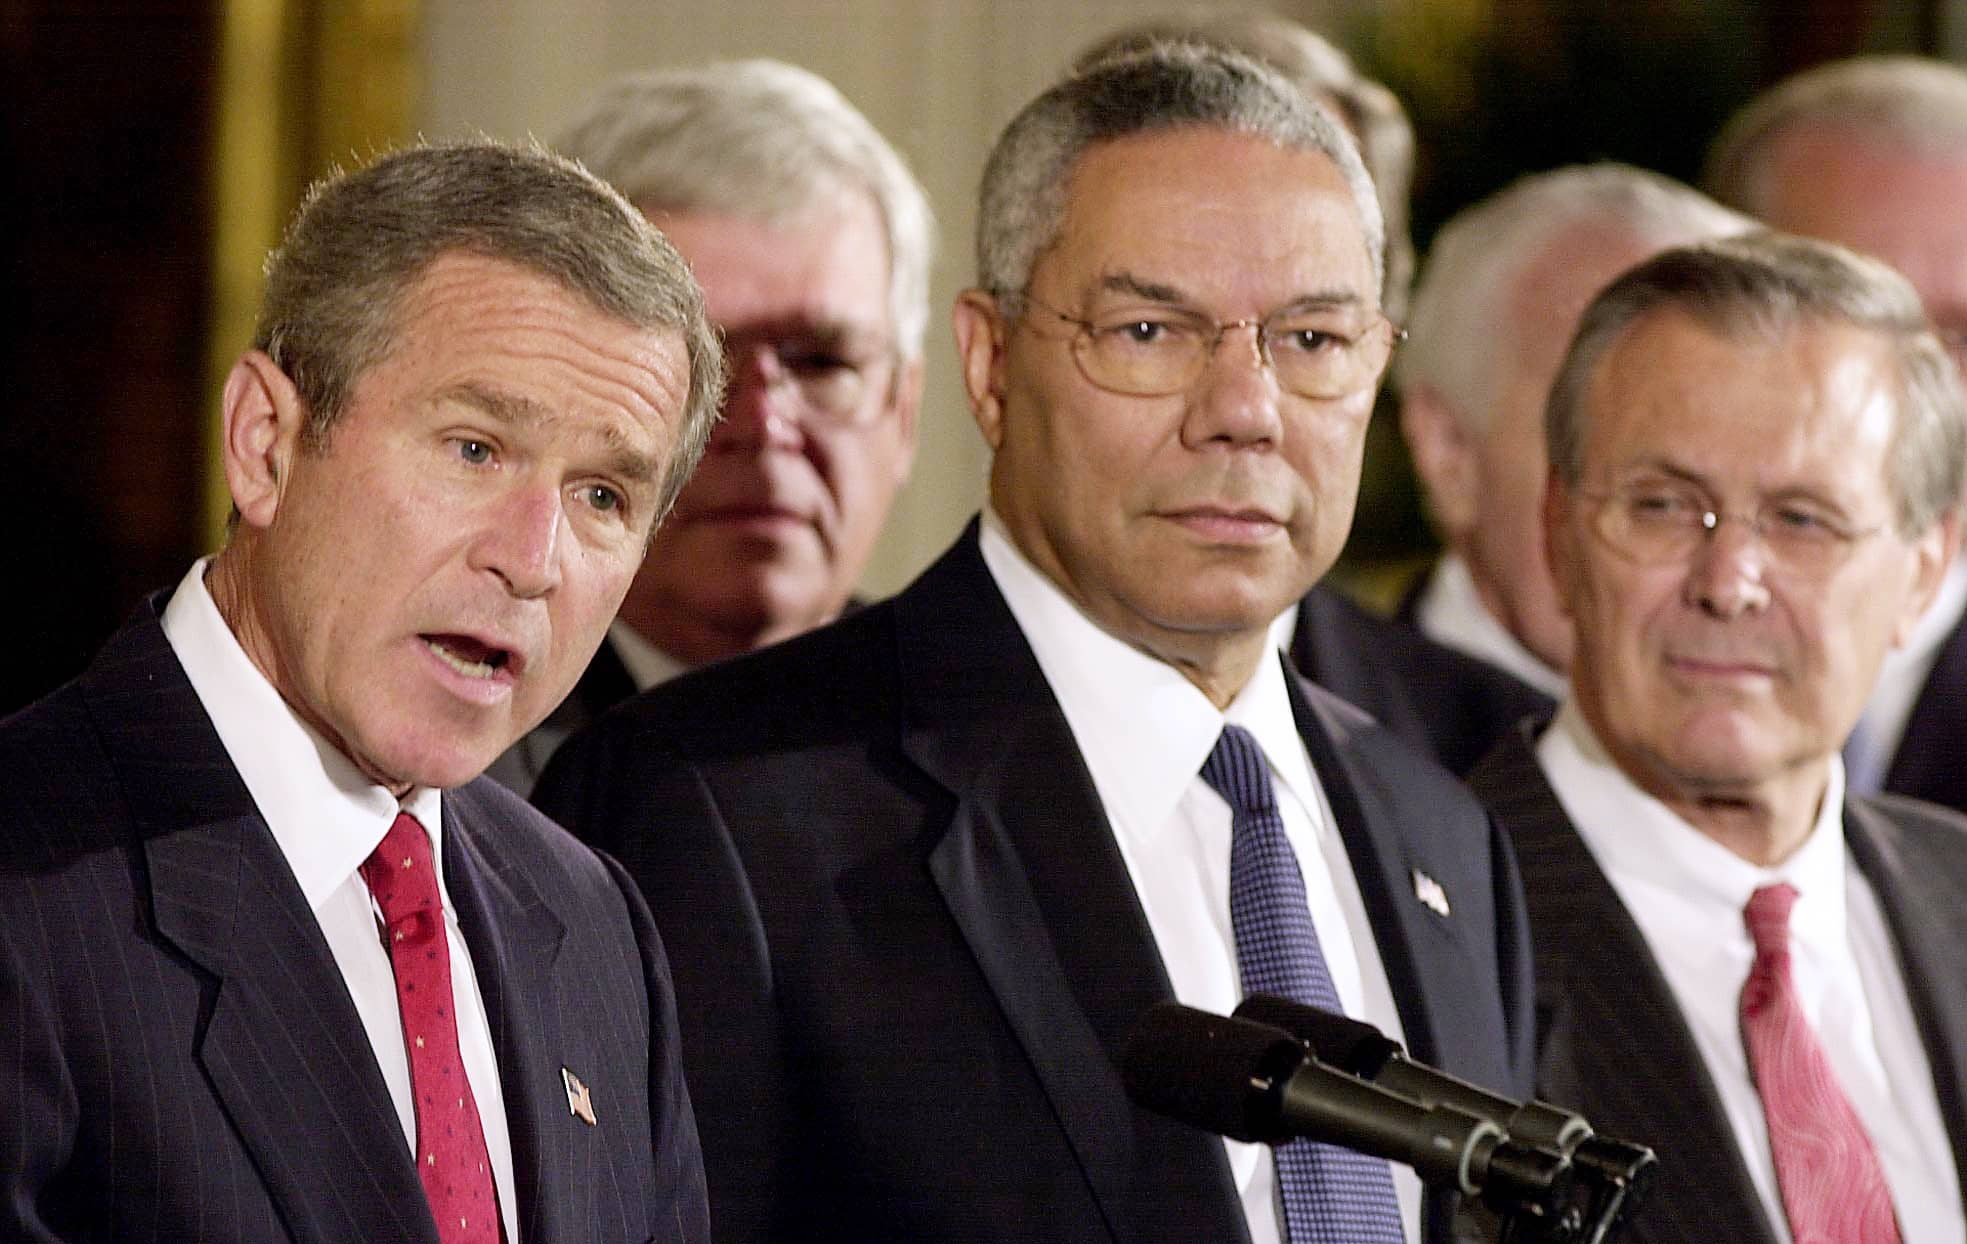 House votes to repeal 2002 Iraq War authorization as Senate prepares to take action